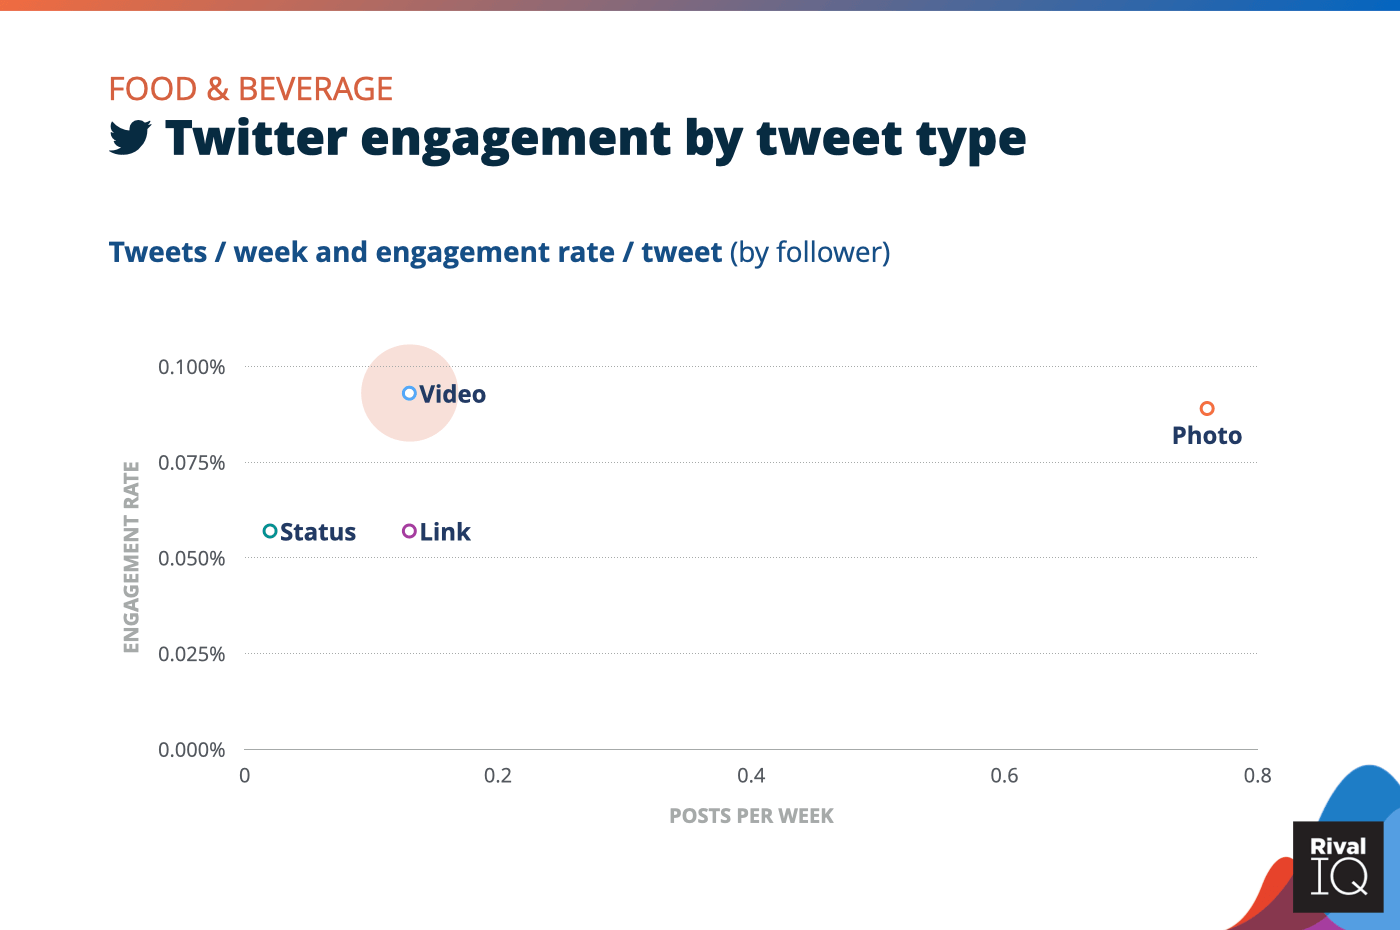 Chart of social media benchmarks for Twitter posts per week and engagement rate by tweet type, Food & Beverage